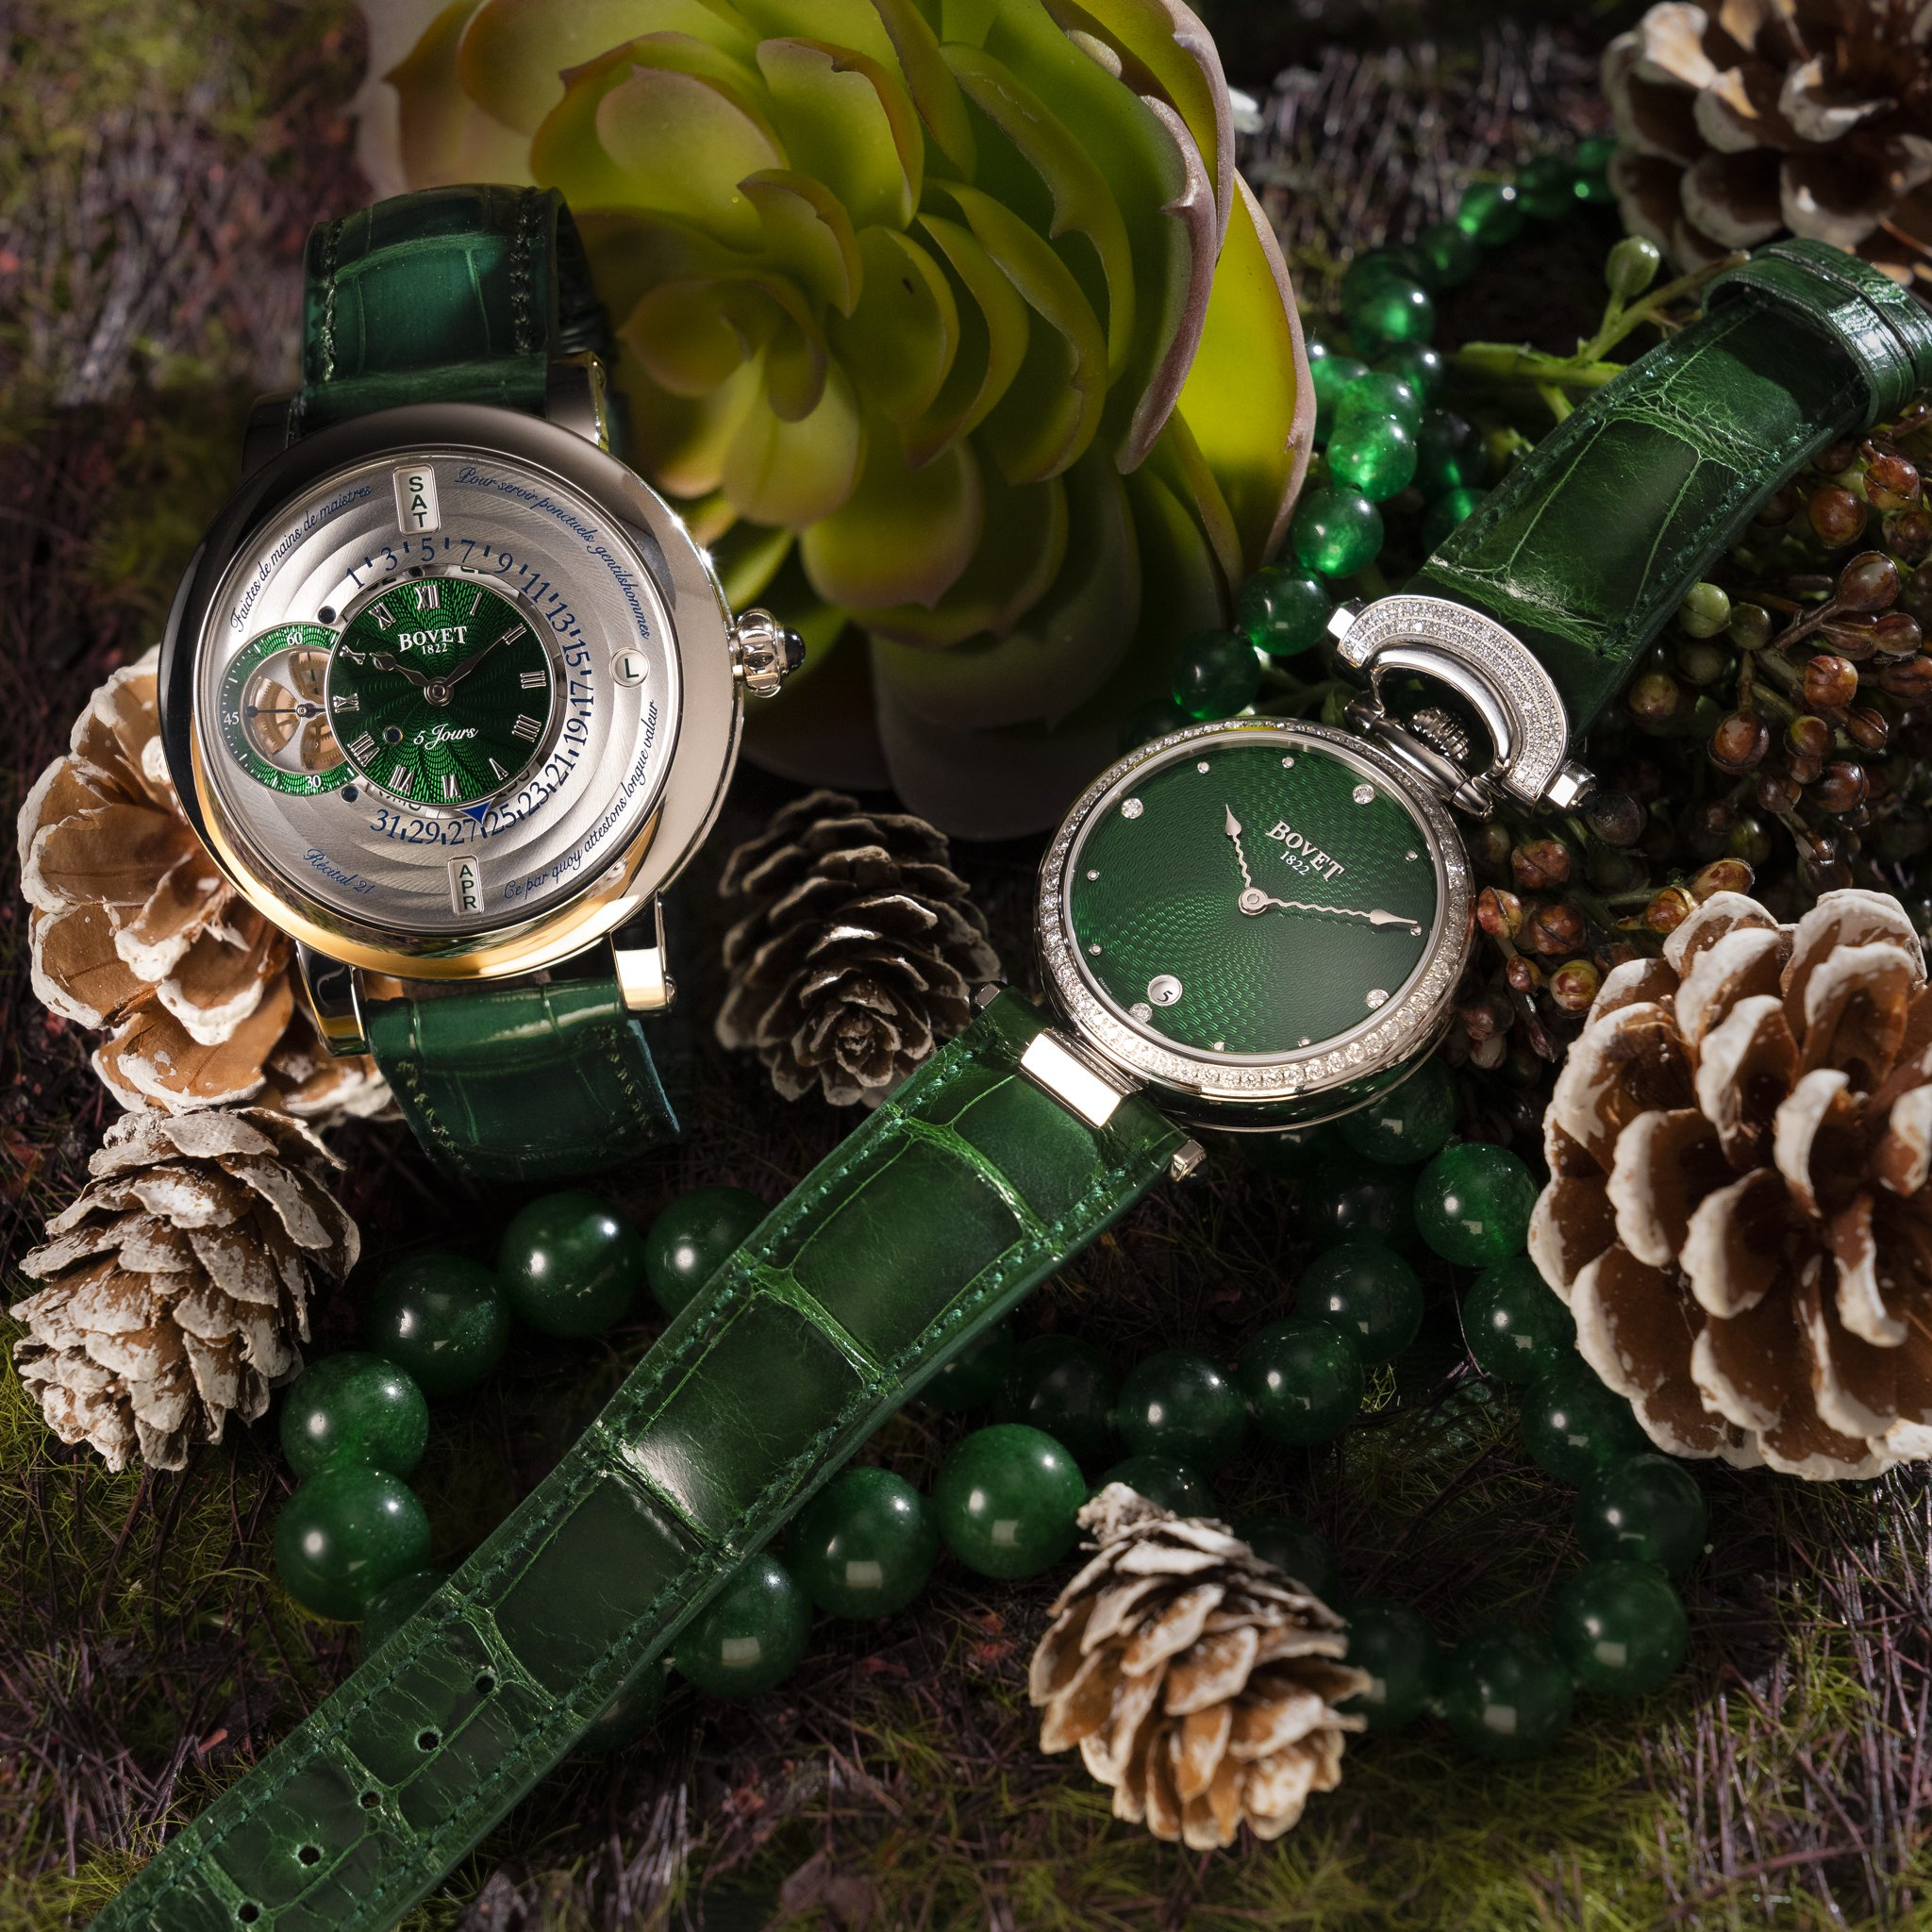 Bovet Recital_Ahmed Seddiqi & Sons_ Gifting.jpeg